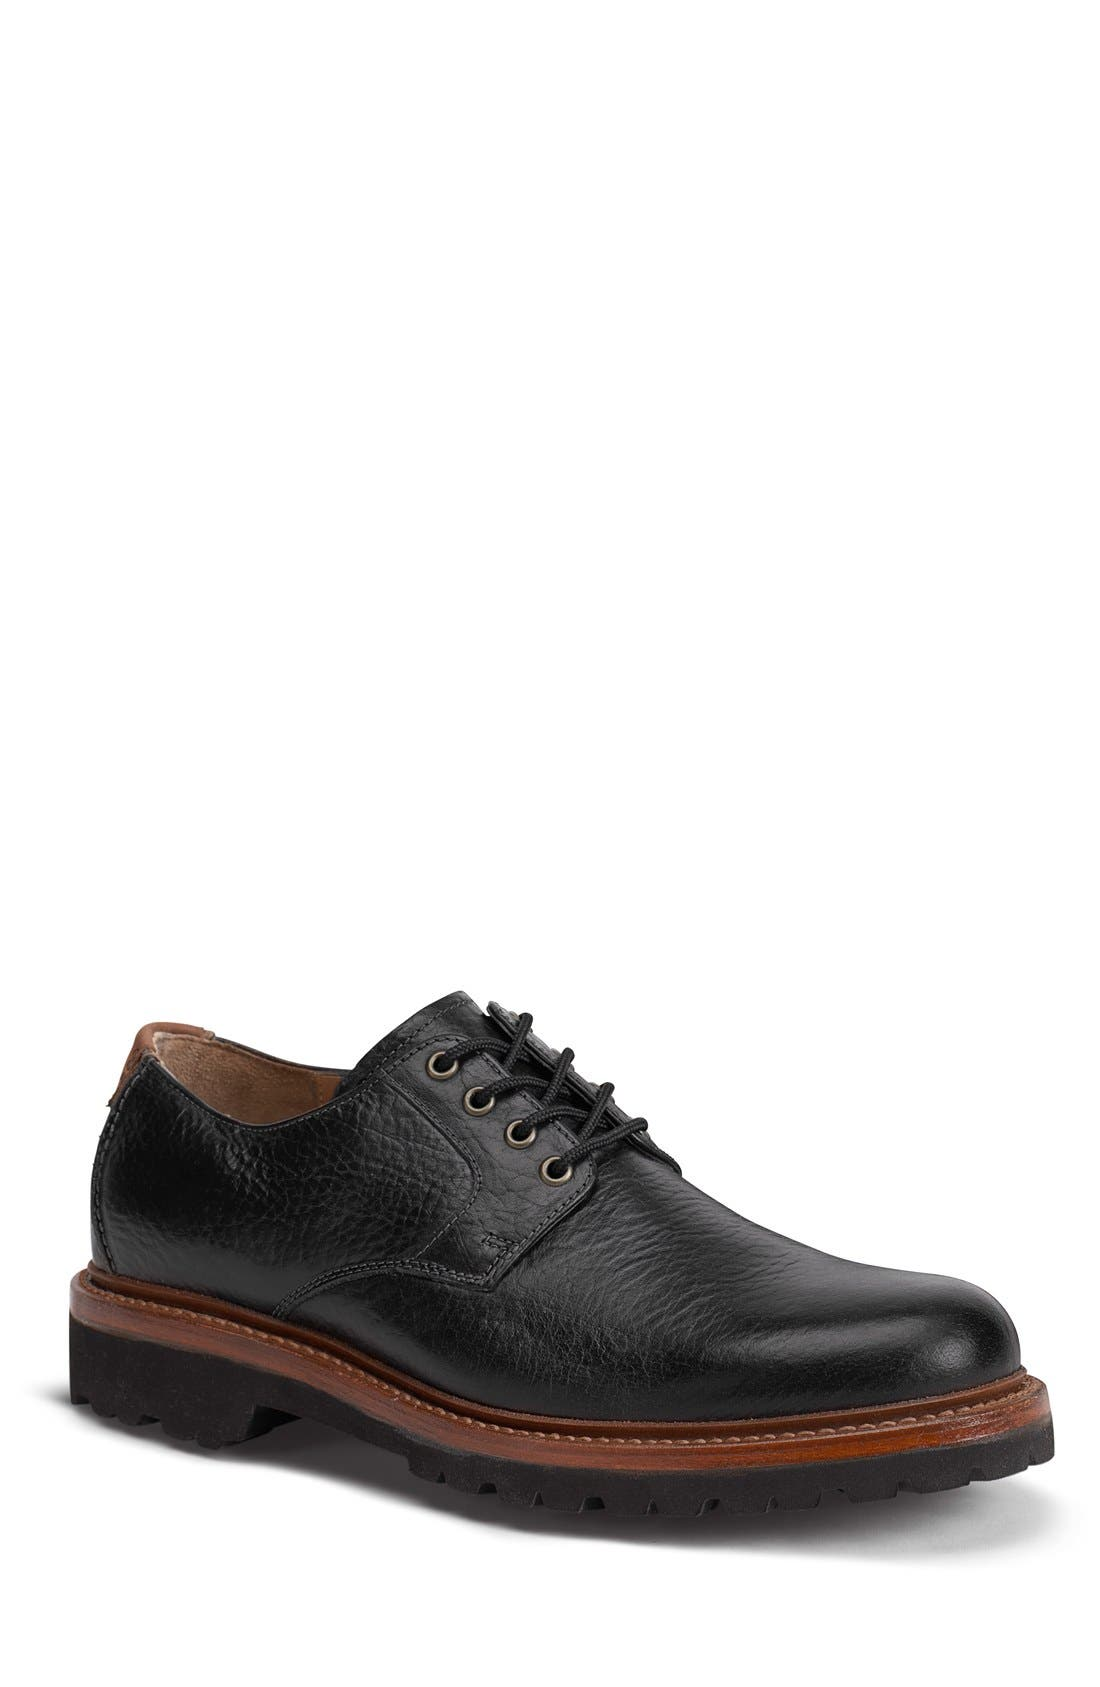 TRASK 'Gallatin II' Oxford, Main, color, BLACK LEATHER